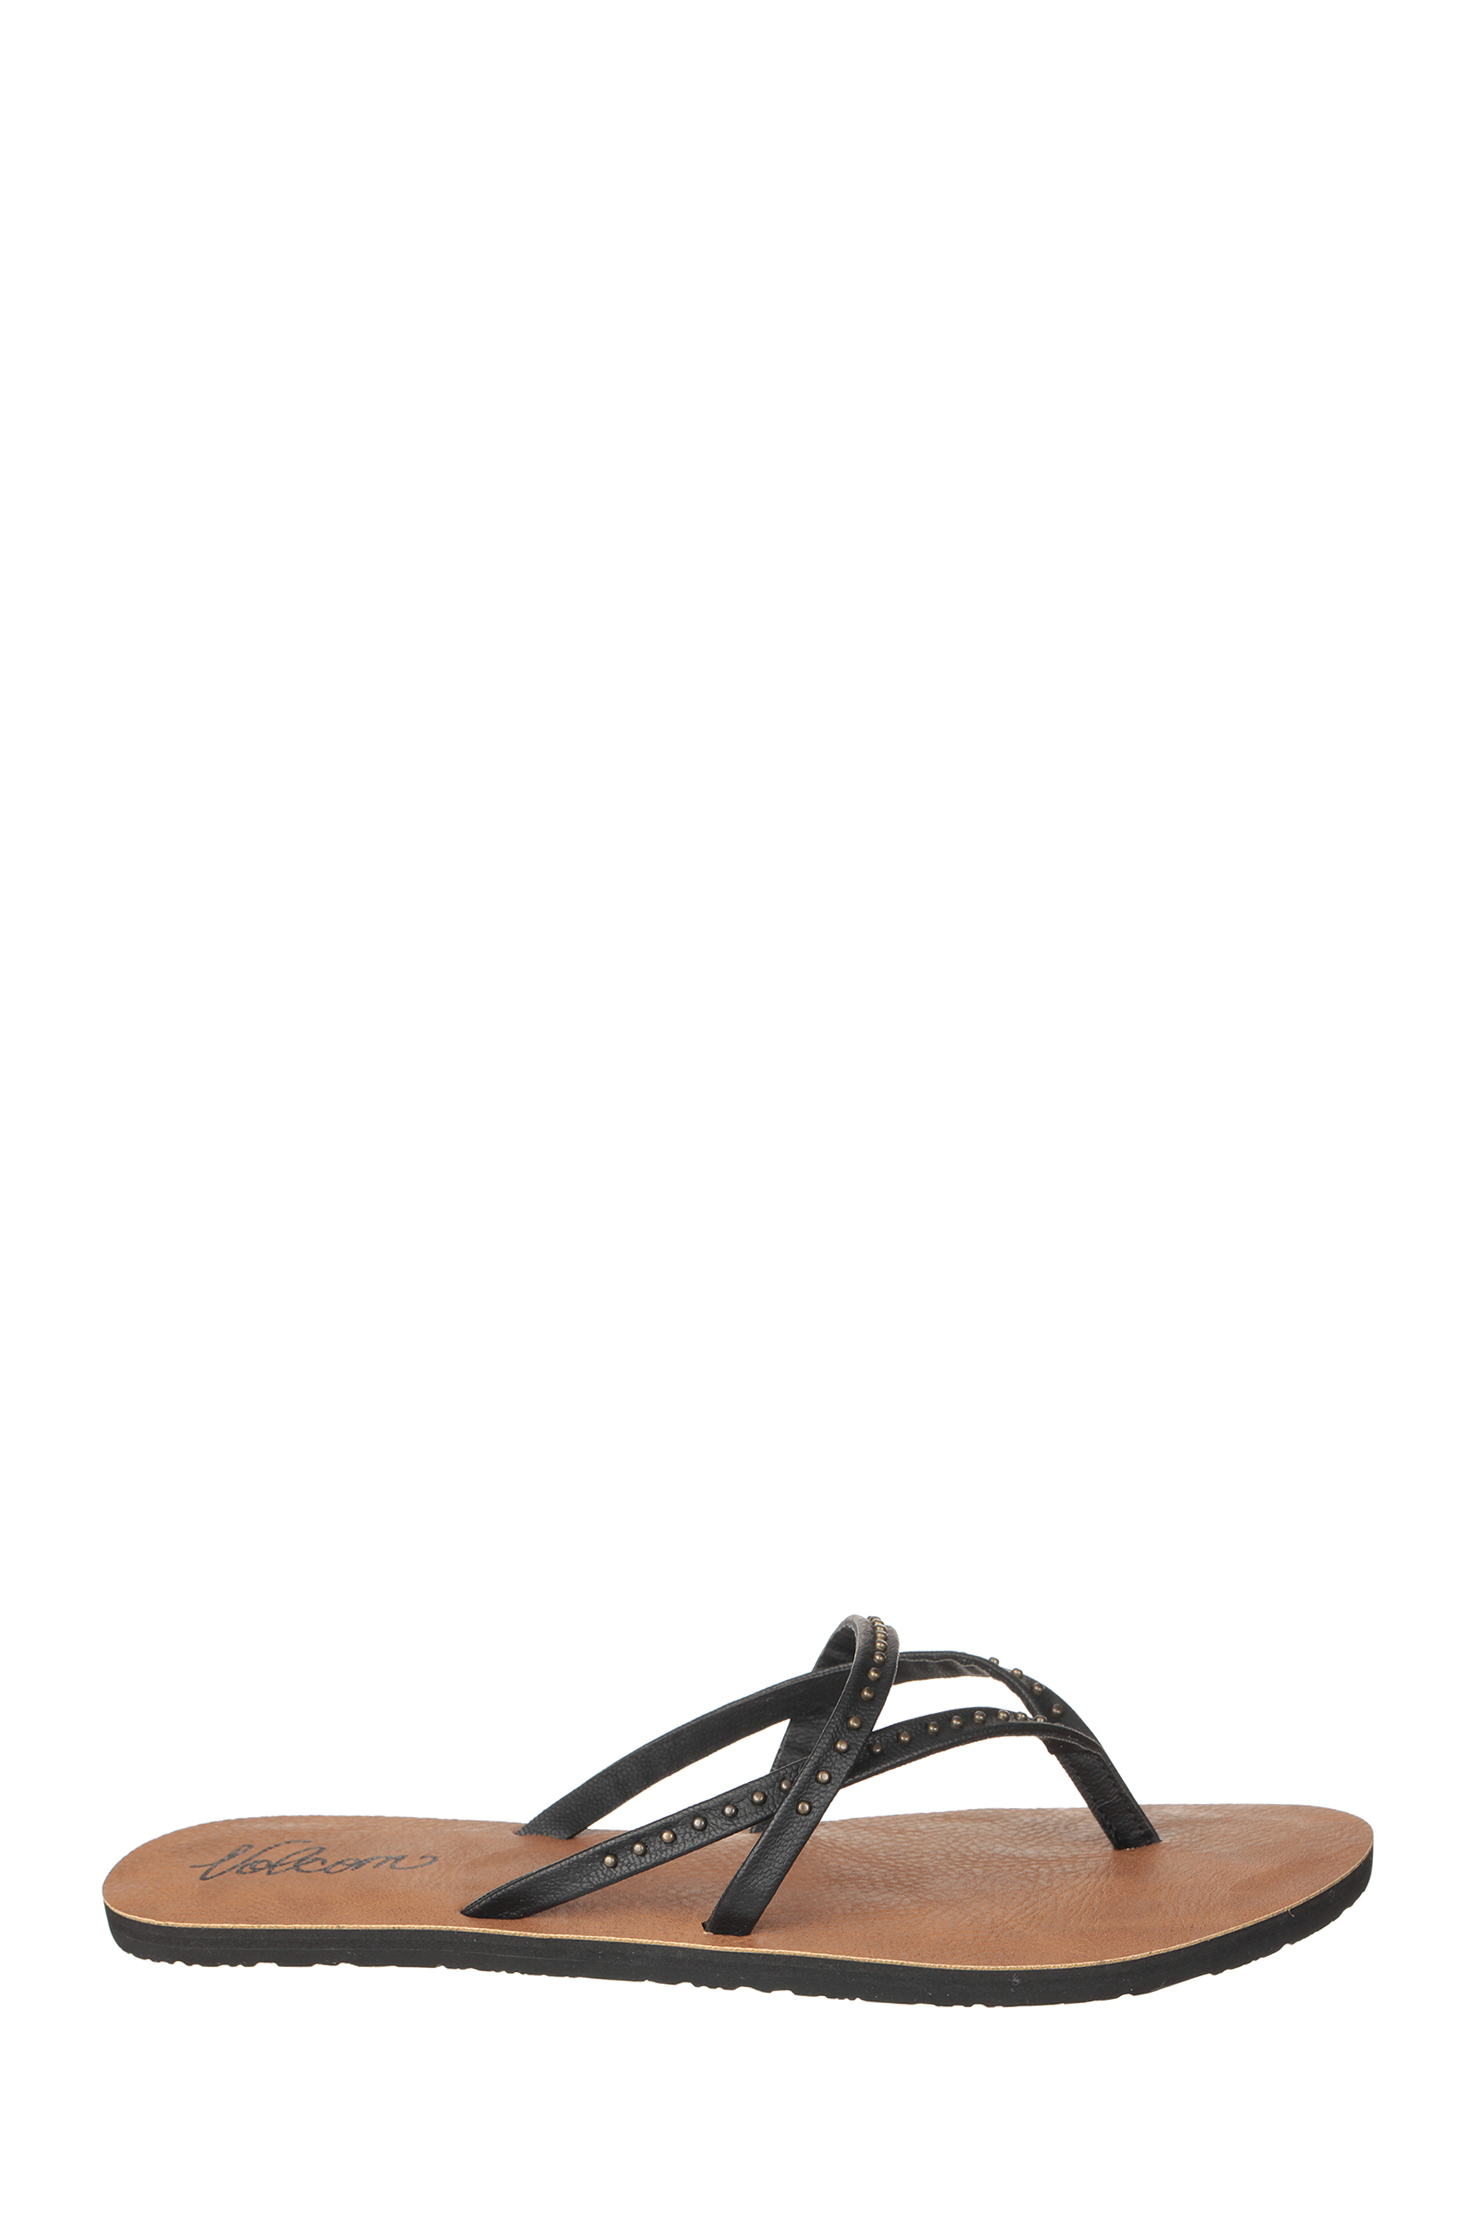 Awesome VOLCOM Forever 3 Womens Sandals 292033150  Sandals